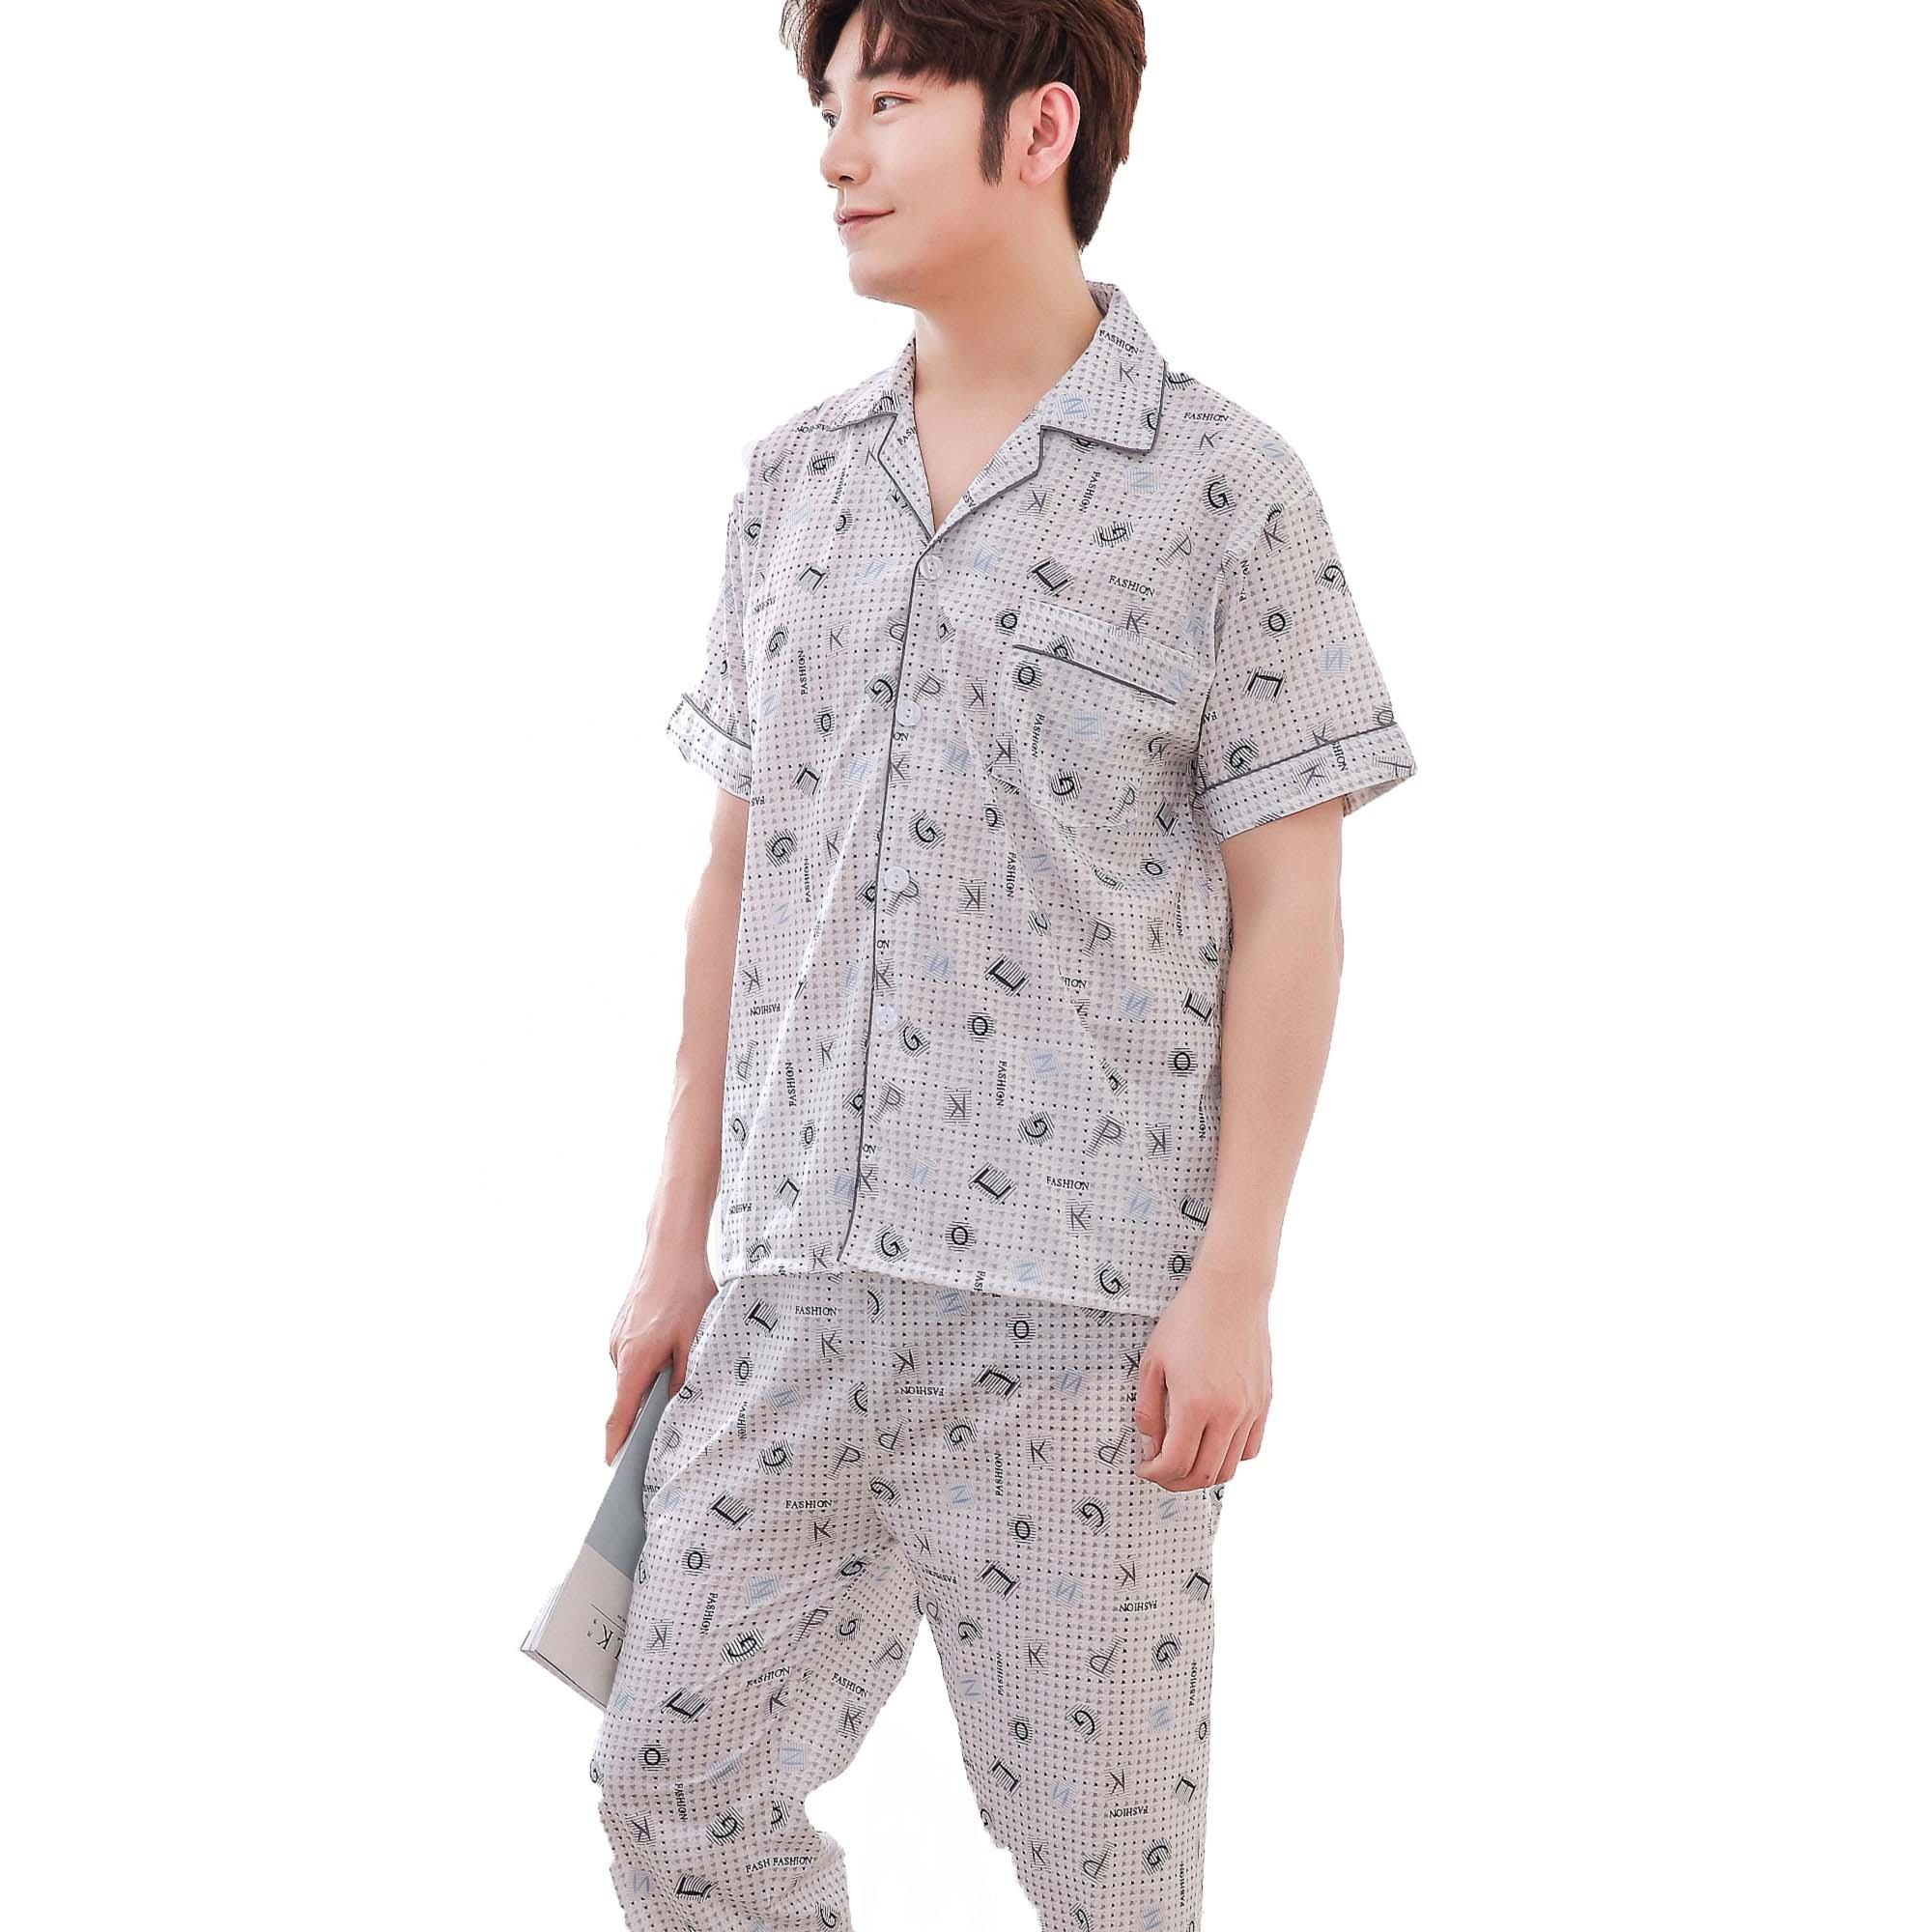 Korean Style Men's Pajamas Set Short Sleeve Long Pants Sleepwear Sir Papa Cotton Night Sleep Pajamas